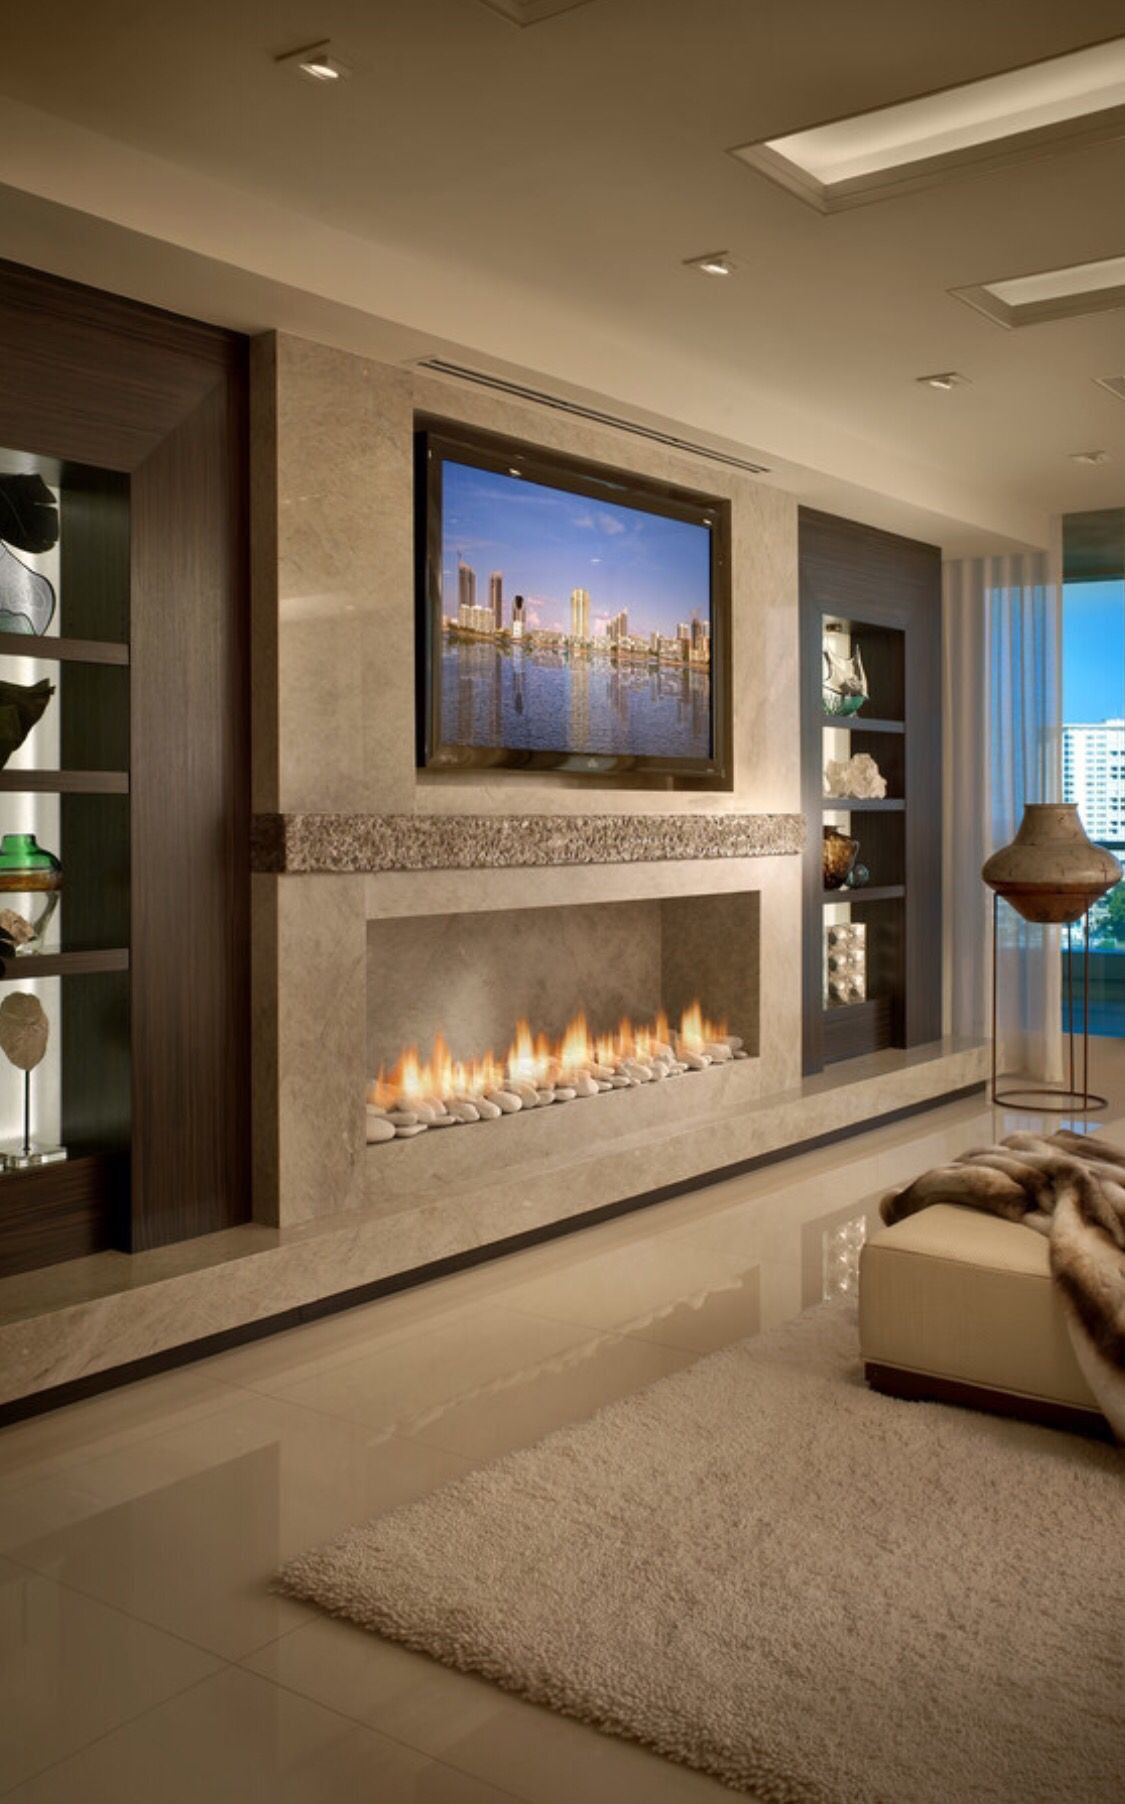 Fresh Great Room Tv Wall No Fireplace Great Fireplace In